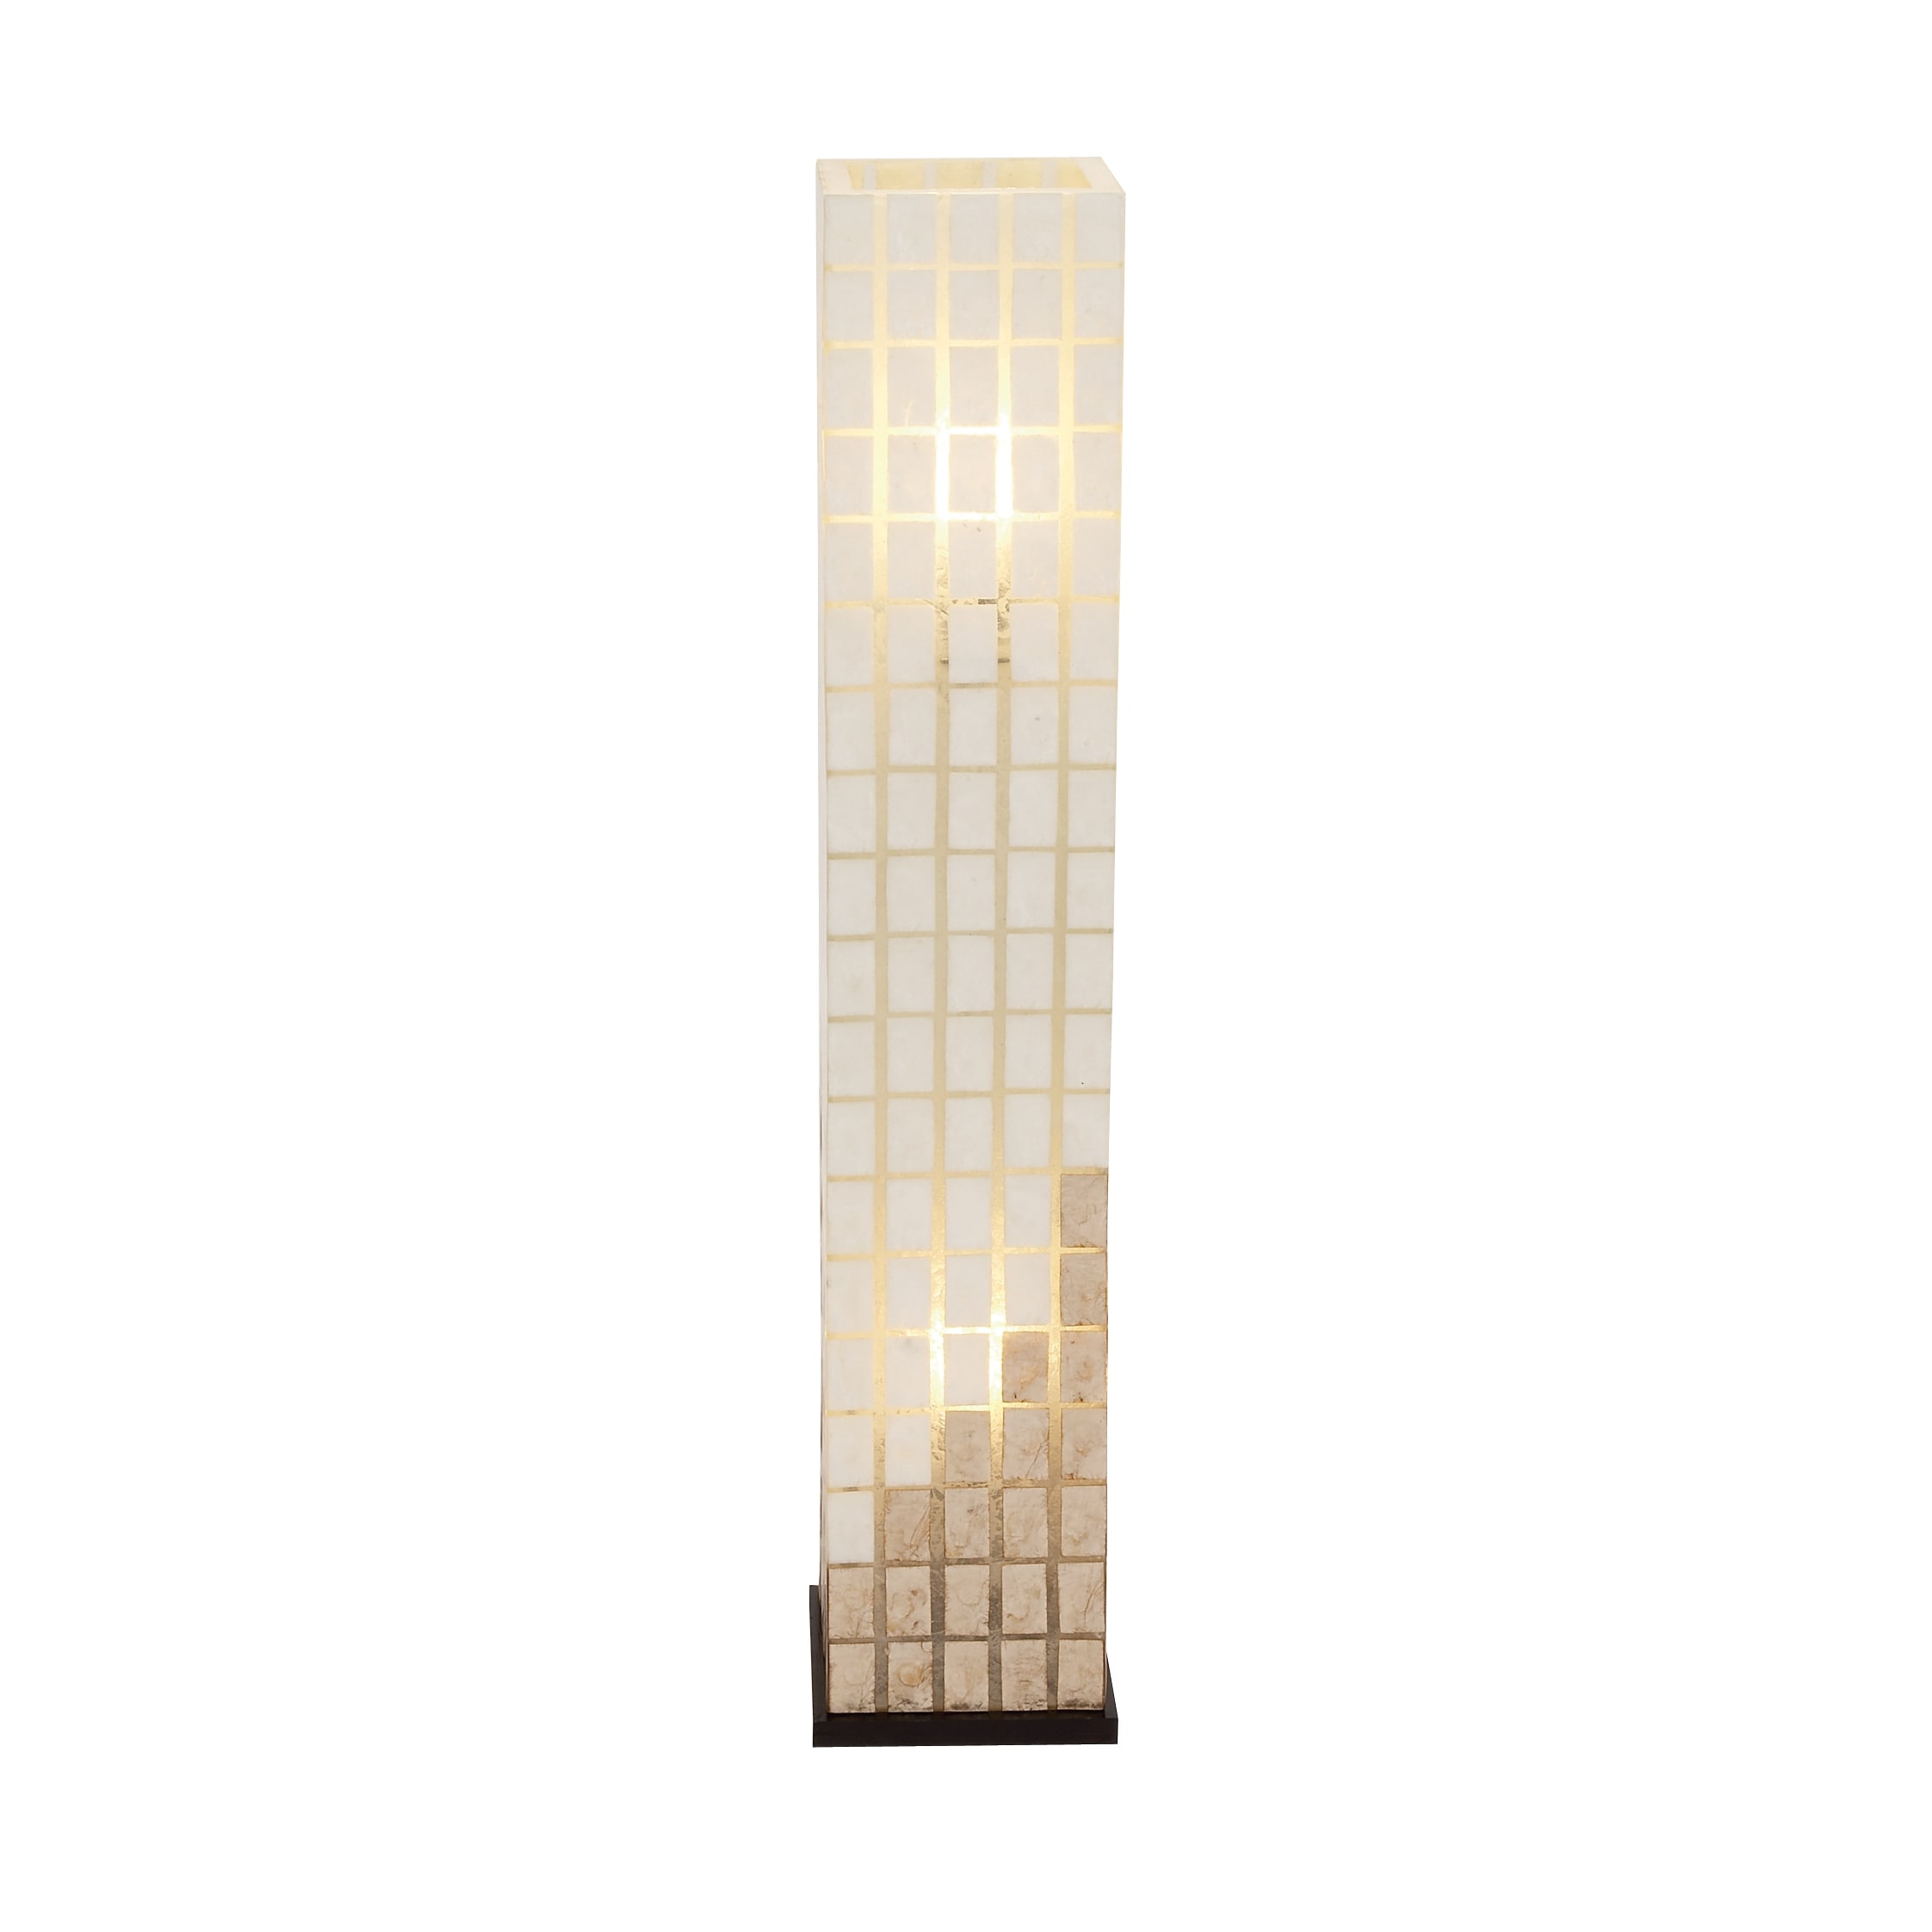 at elm chandelier fixtures west leaf size home pendant floor of capiz table white your unusual shell light beads shade floors hanging full canada lamp